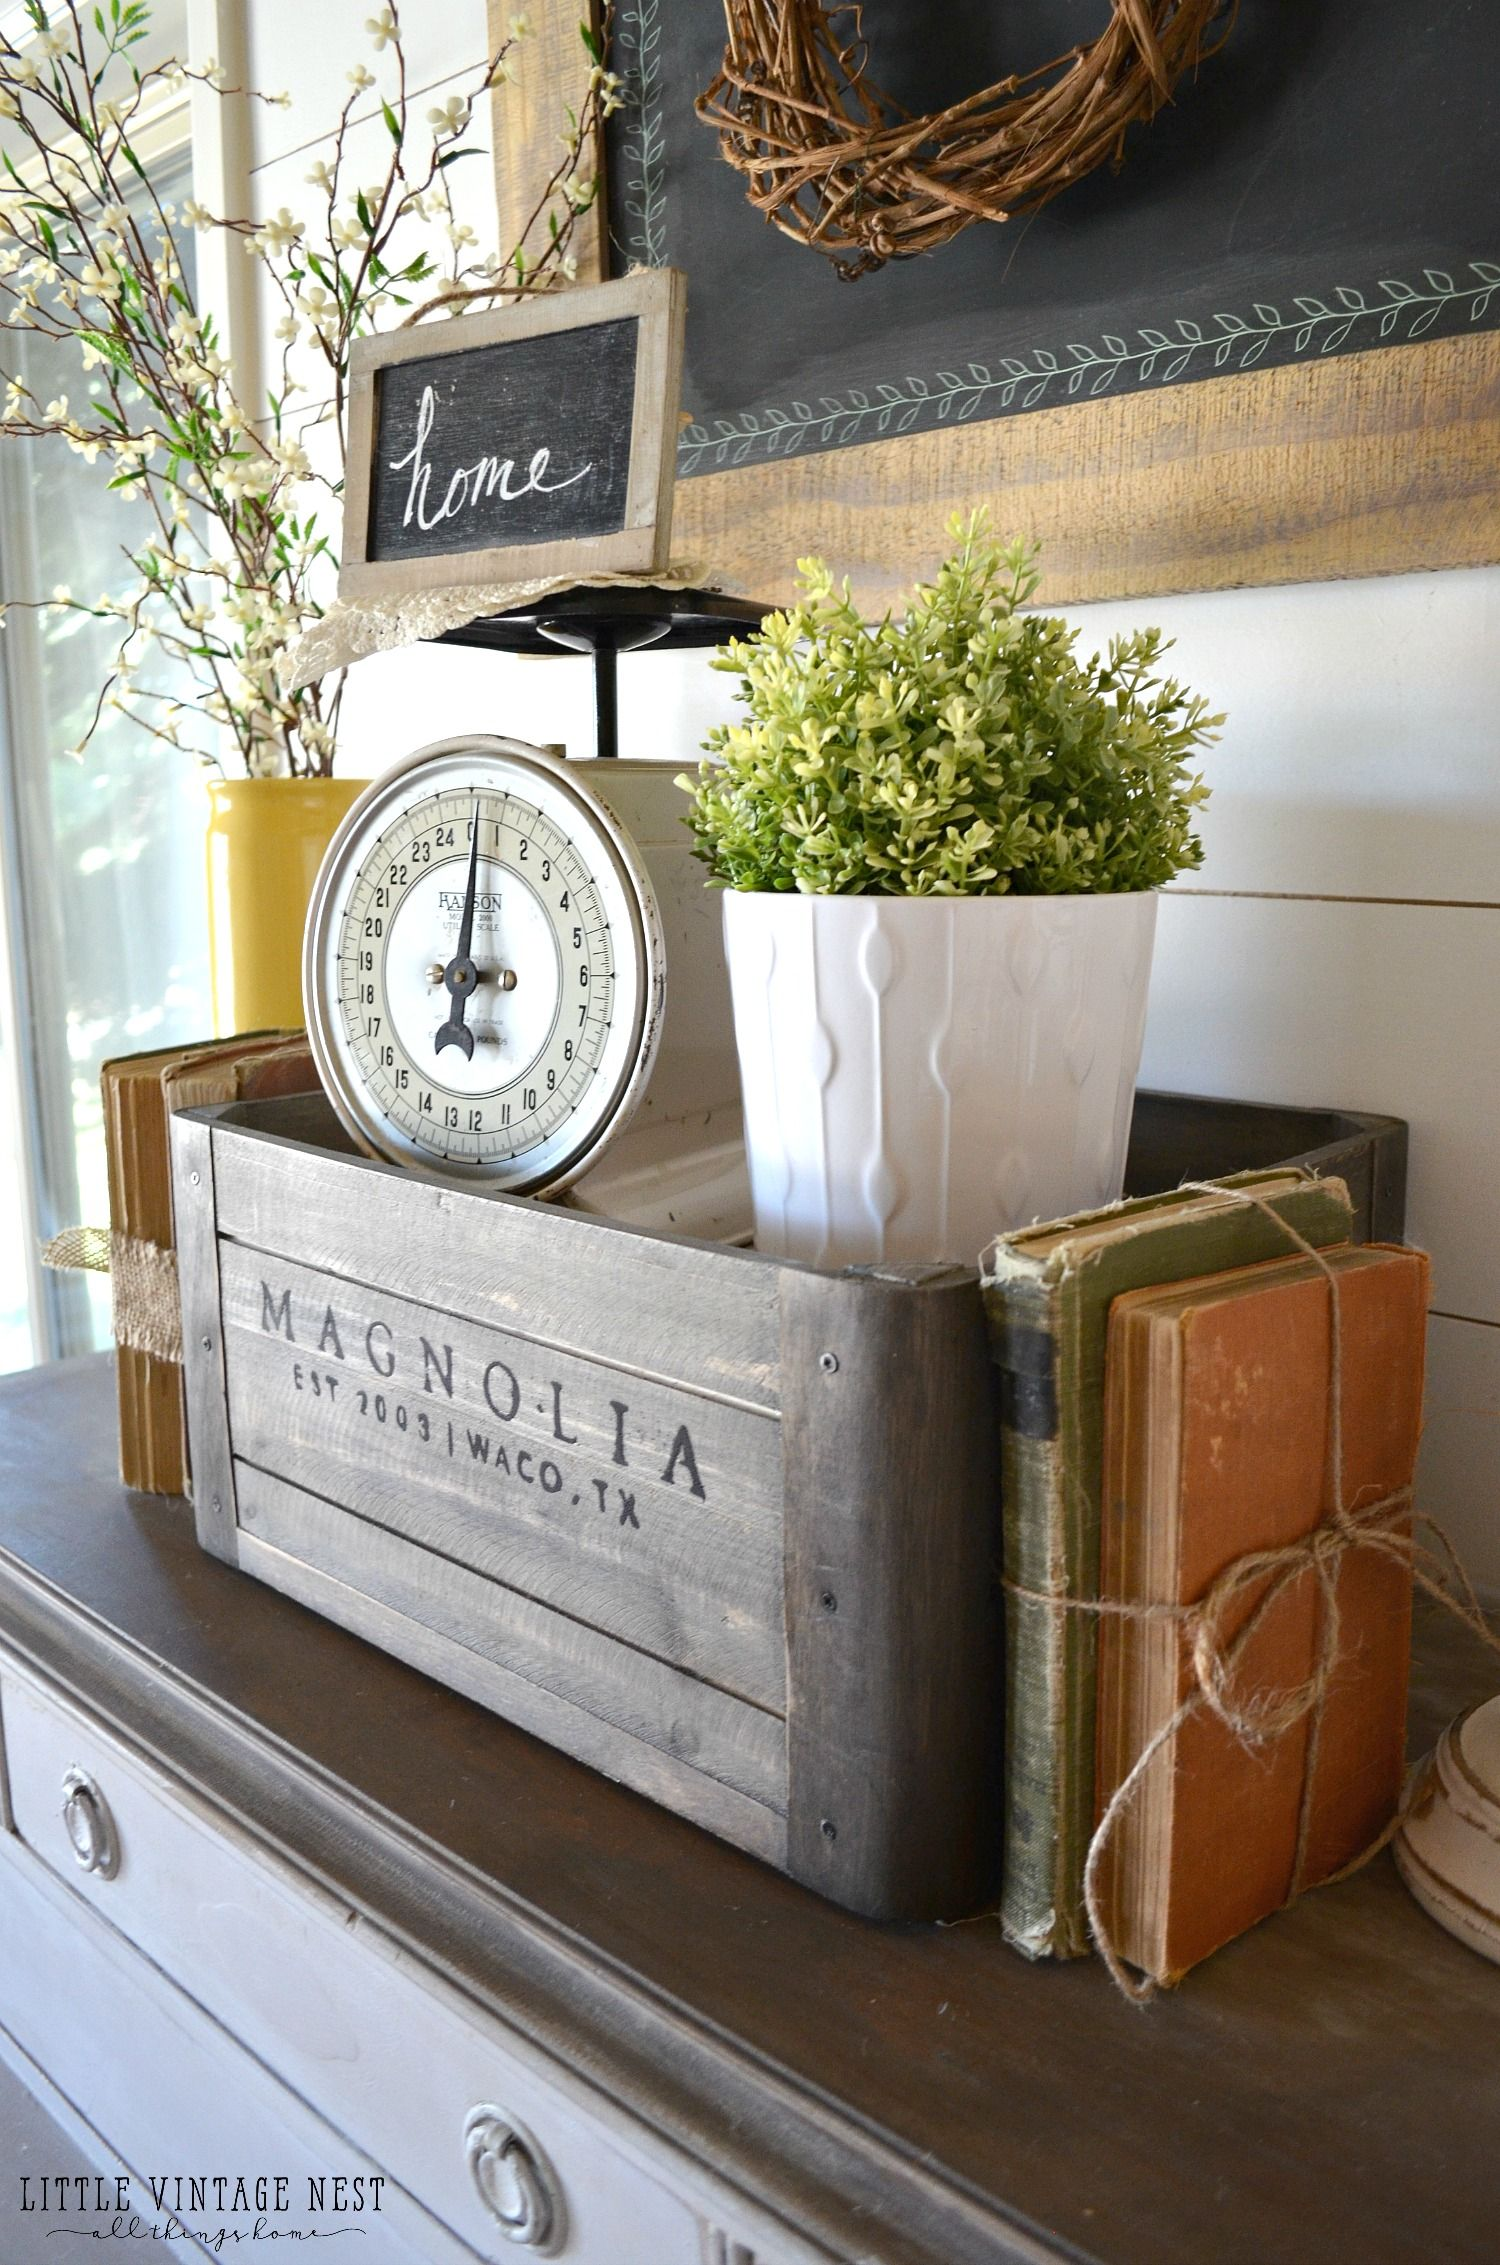 5 ways to style a wooden crate wooden crates vignettes and crates - Decorative wooden crates ...